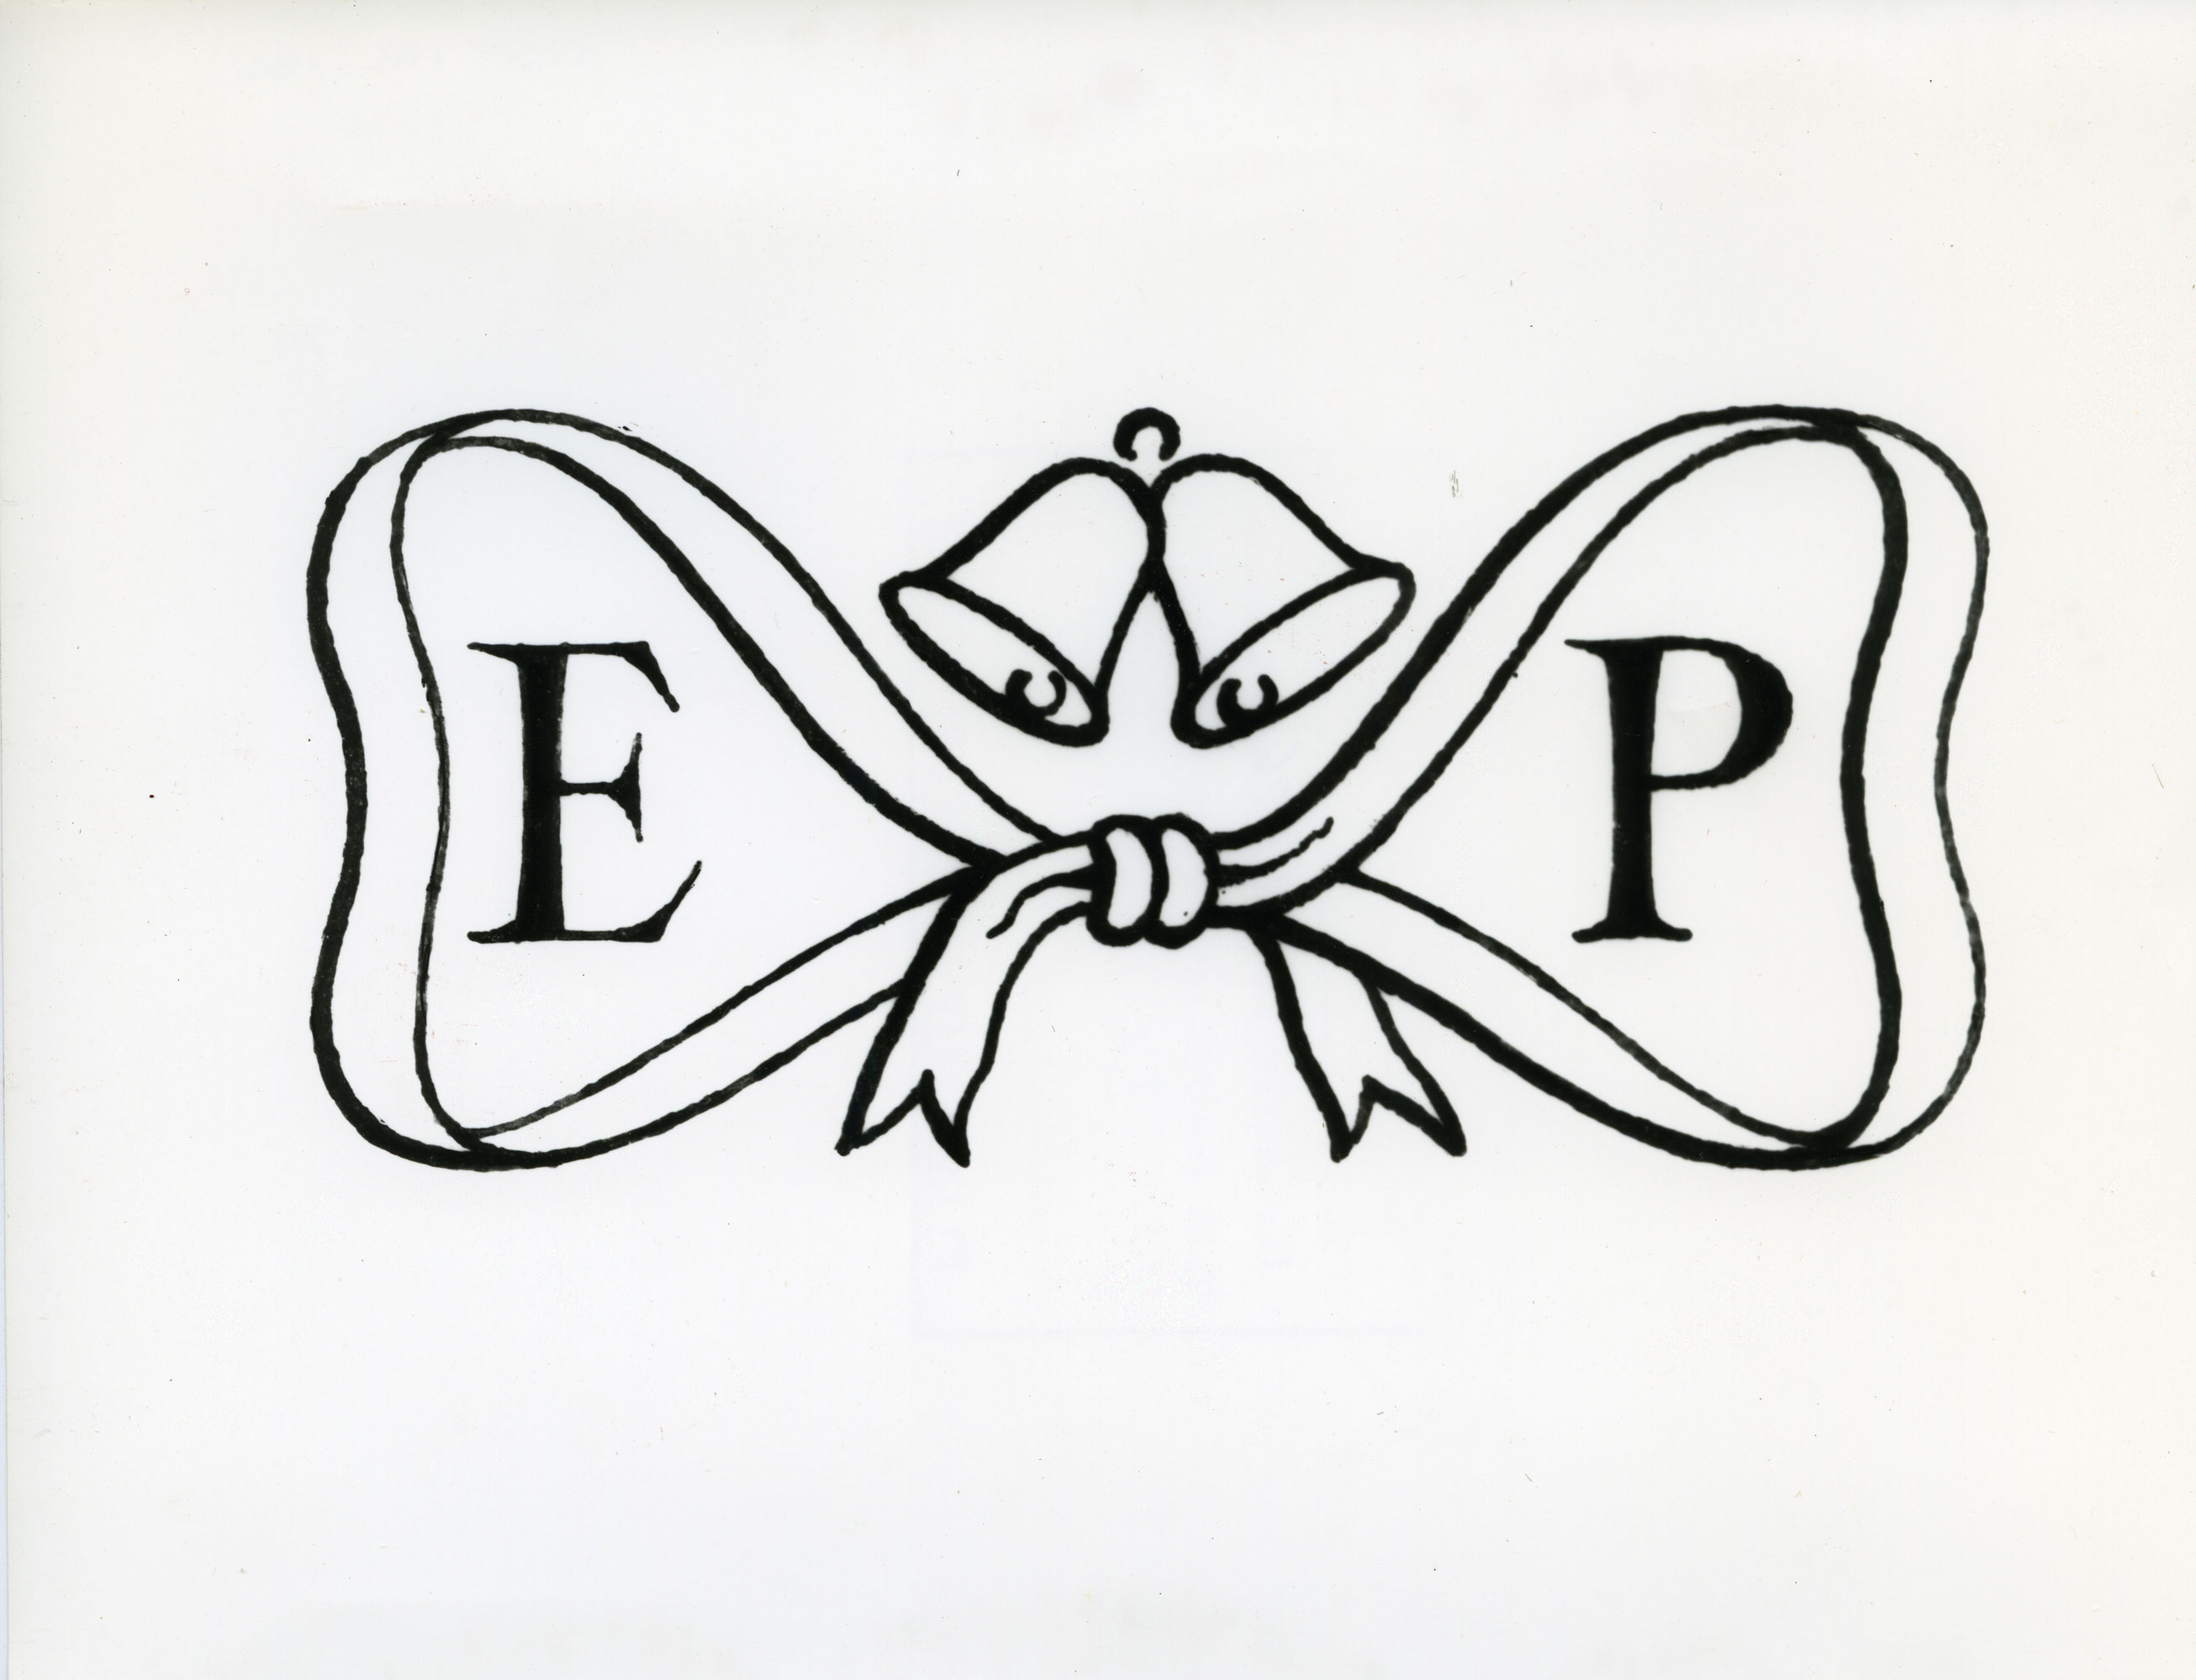 Image of the cancellation designed for the Royal Wedding consisting of the couples initials in a lovers knot.